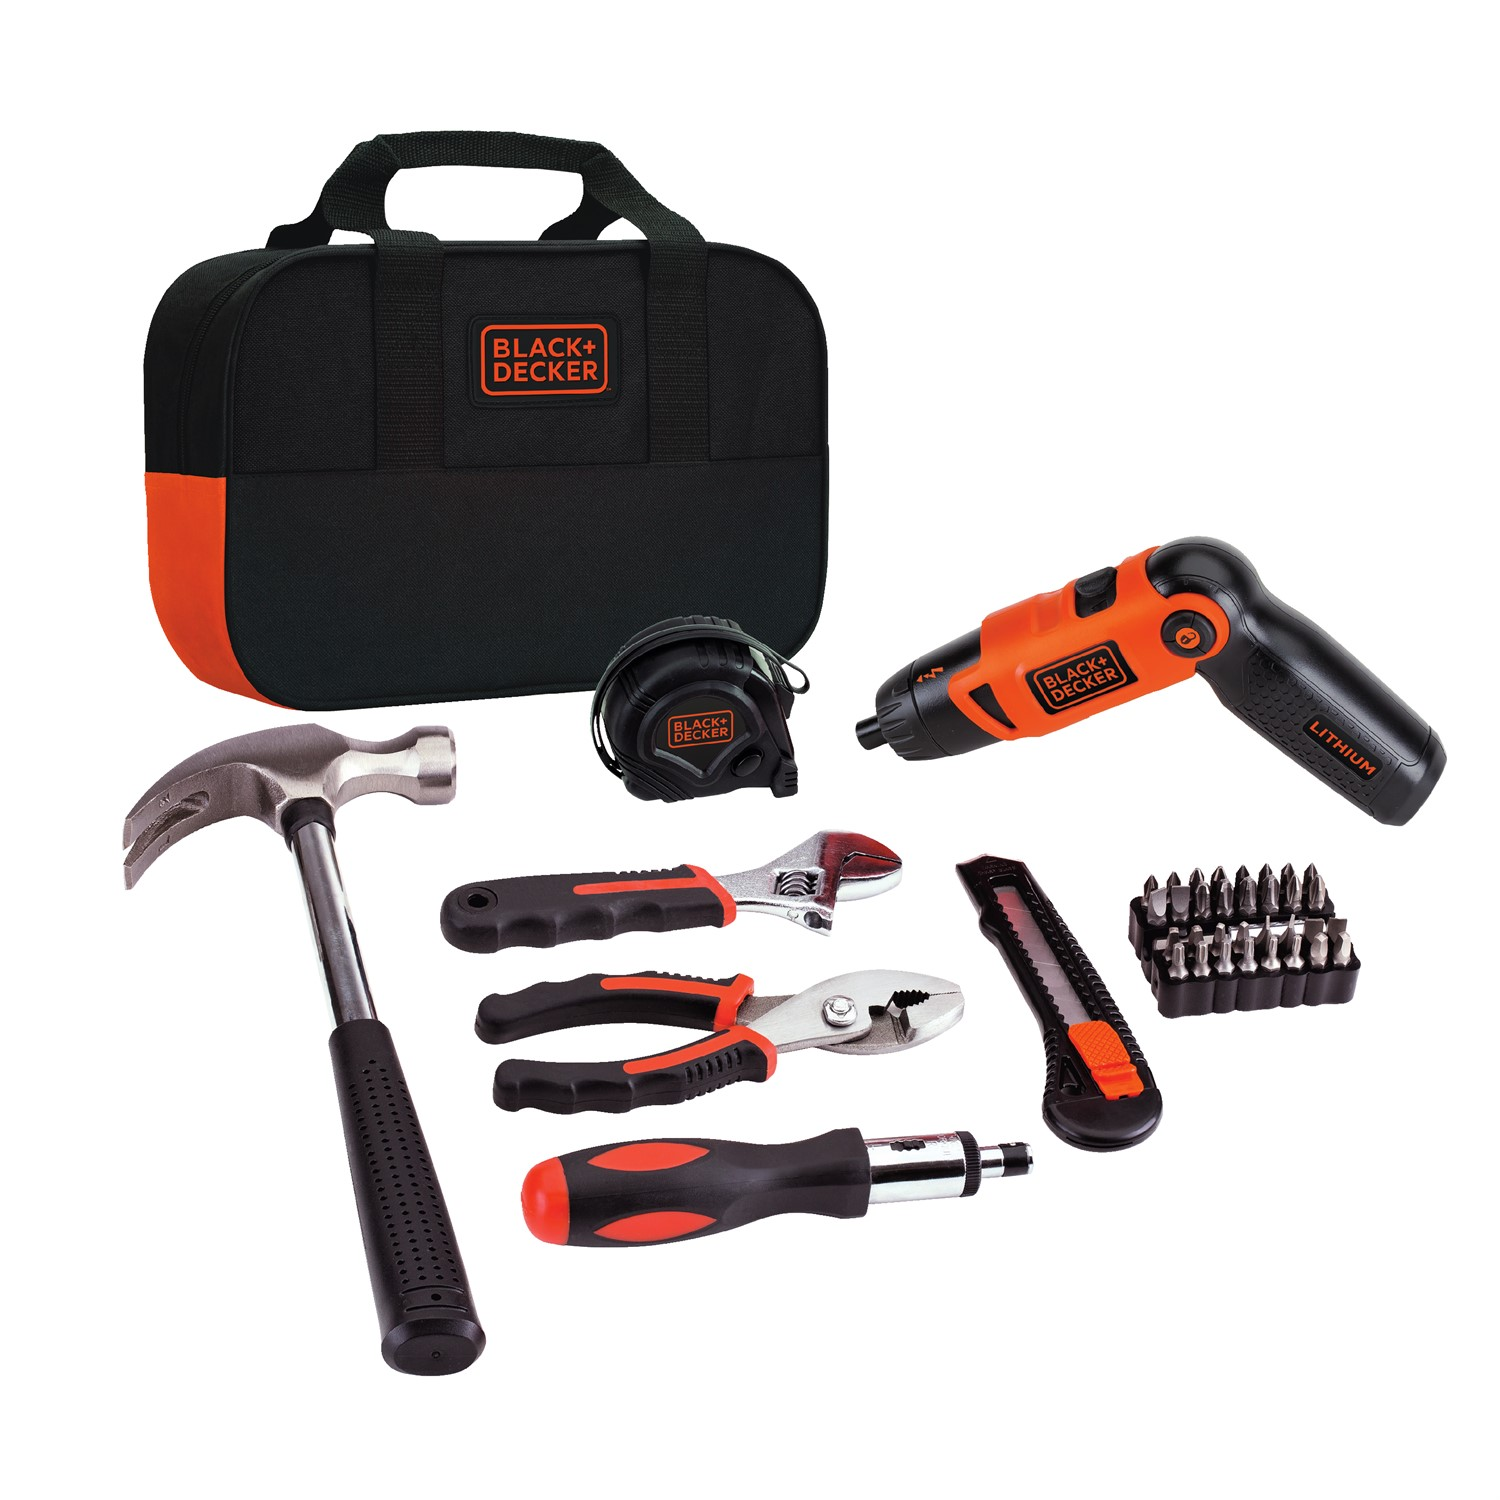 BLACK+DECKER LI2000PK 3.6V 3 Position Rechargeable Screwdriver and Project Kit